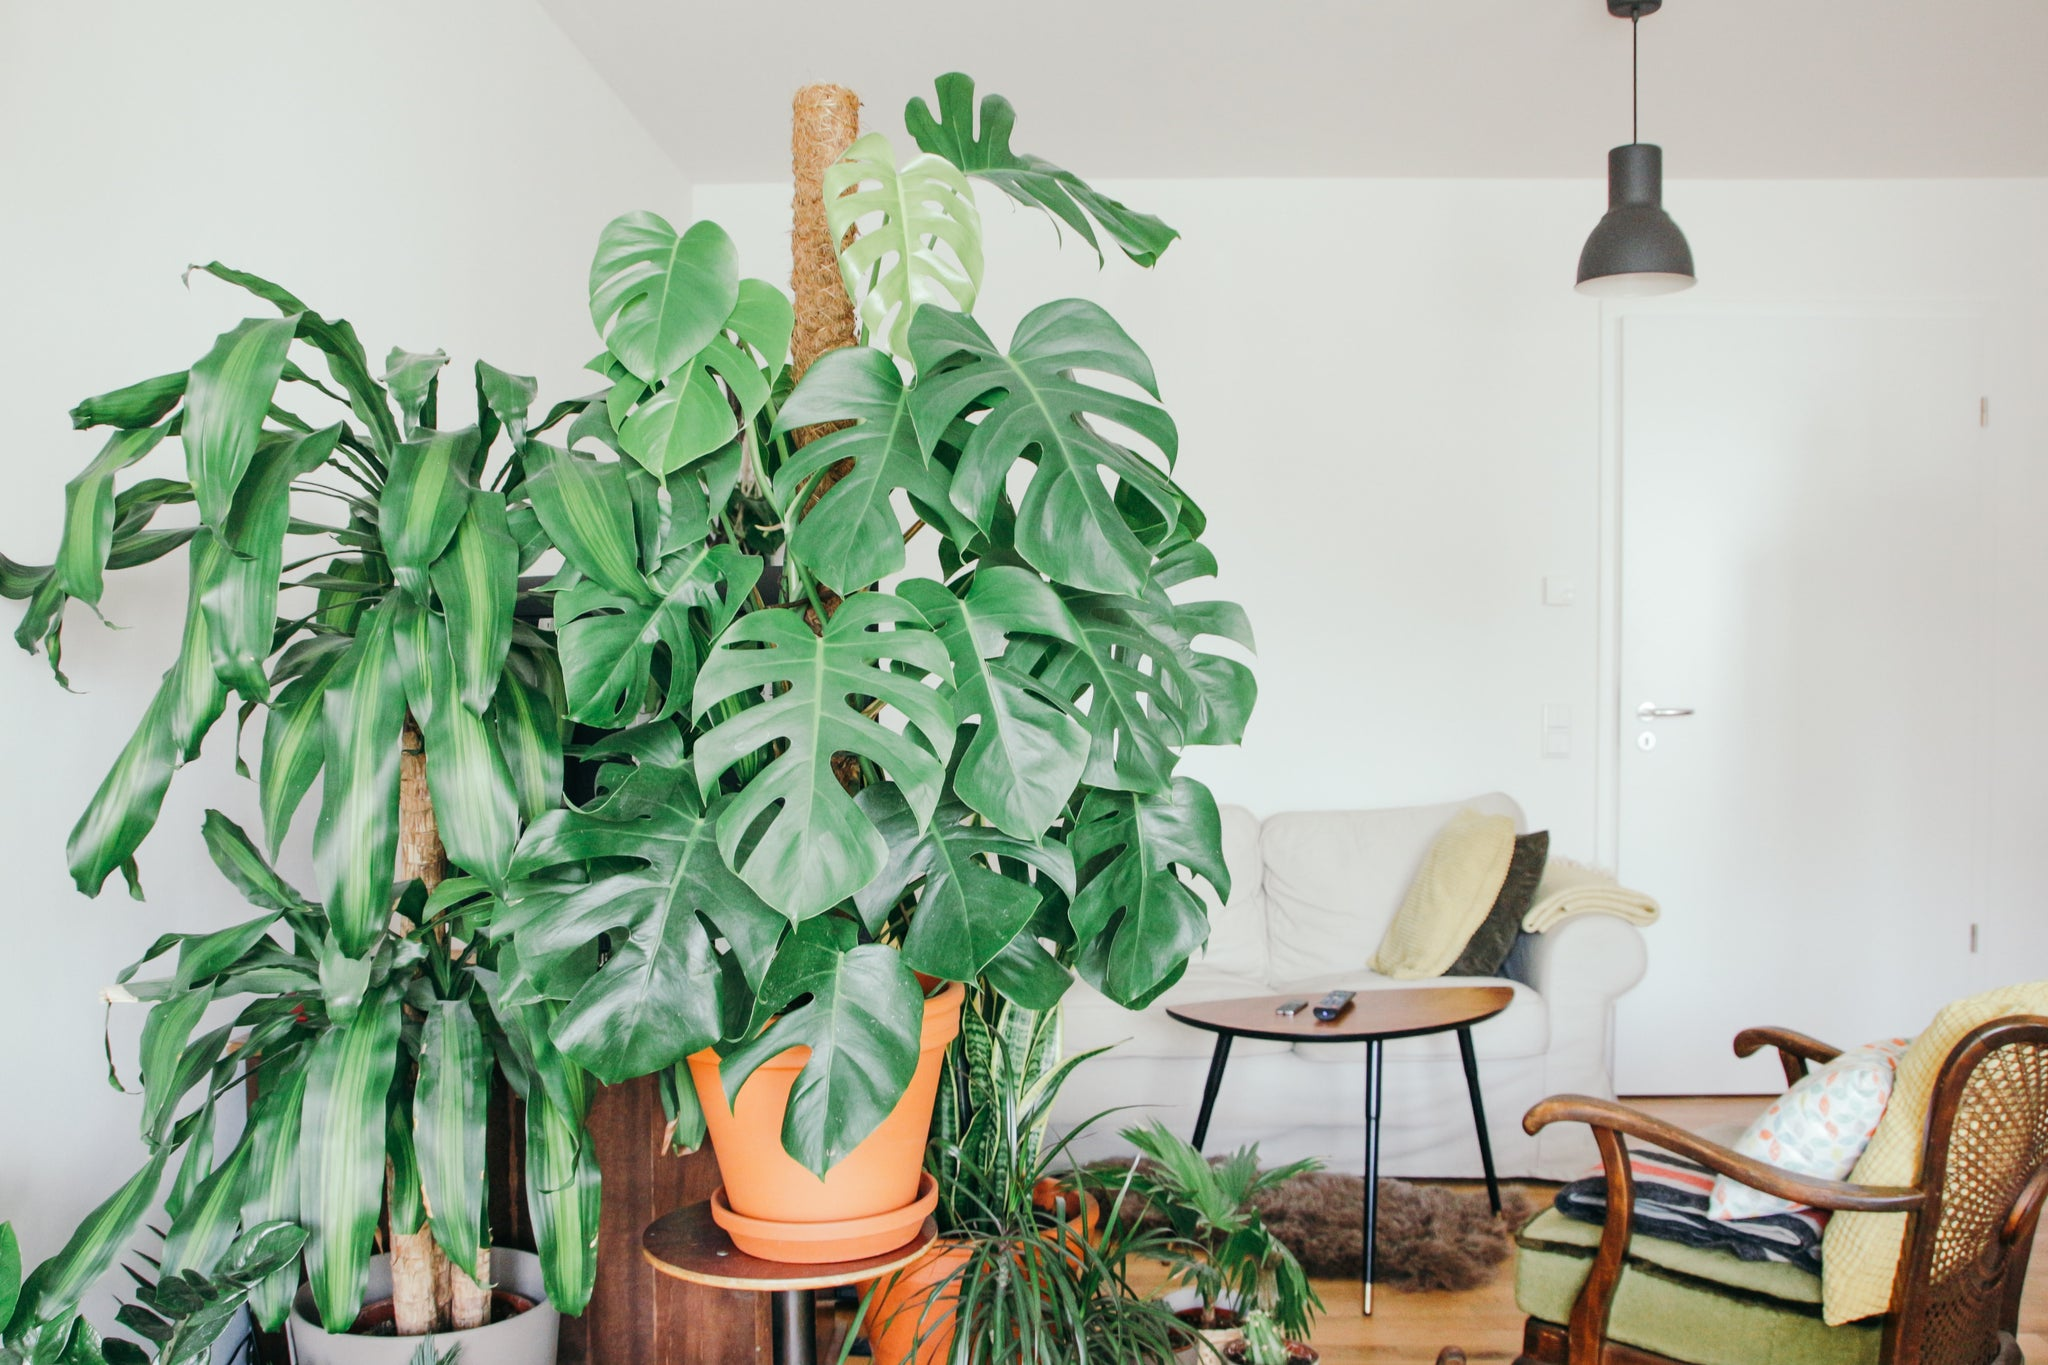 Large monstera plant in a terracotta pot, in a neutral colored living room next to two armchairs.